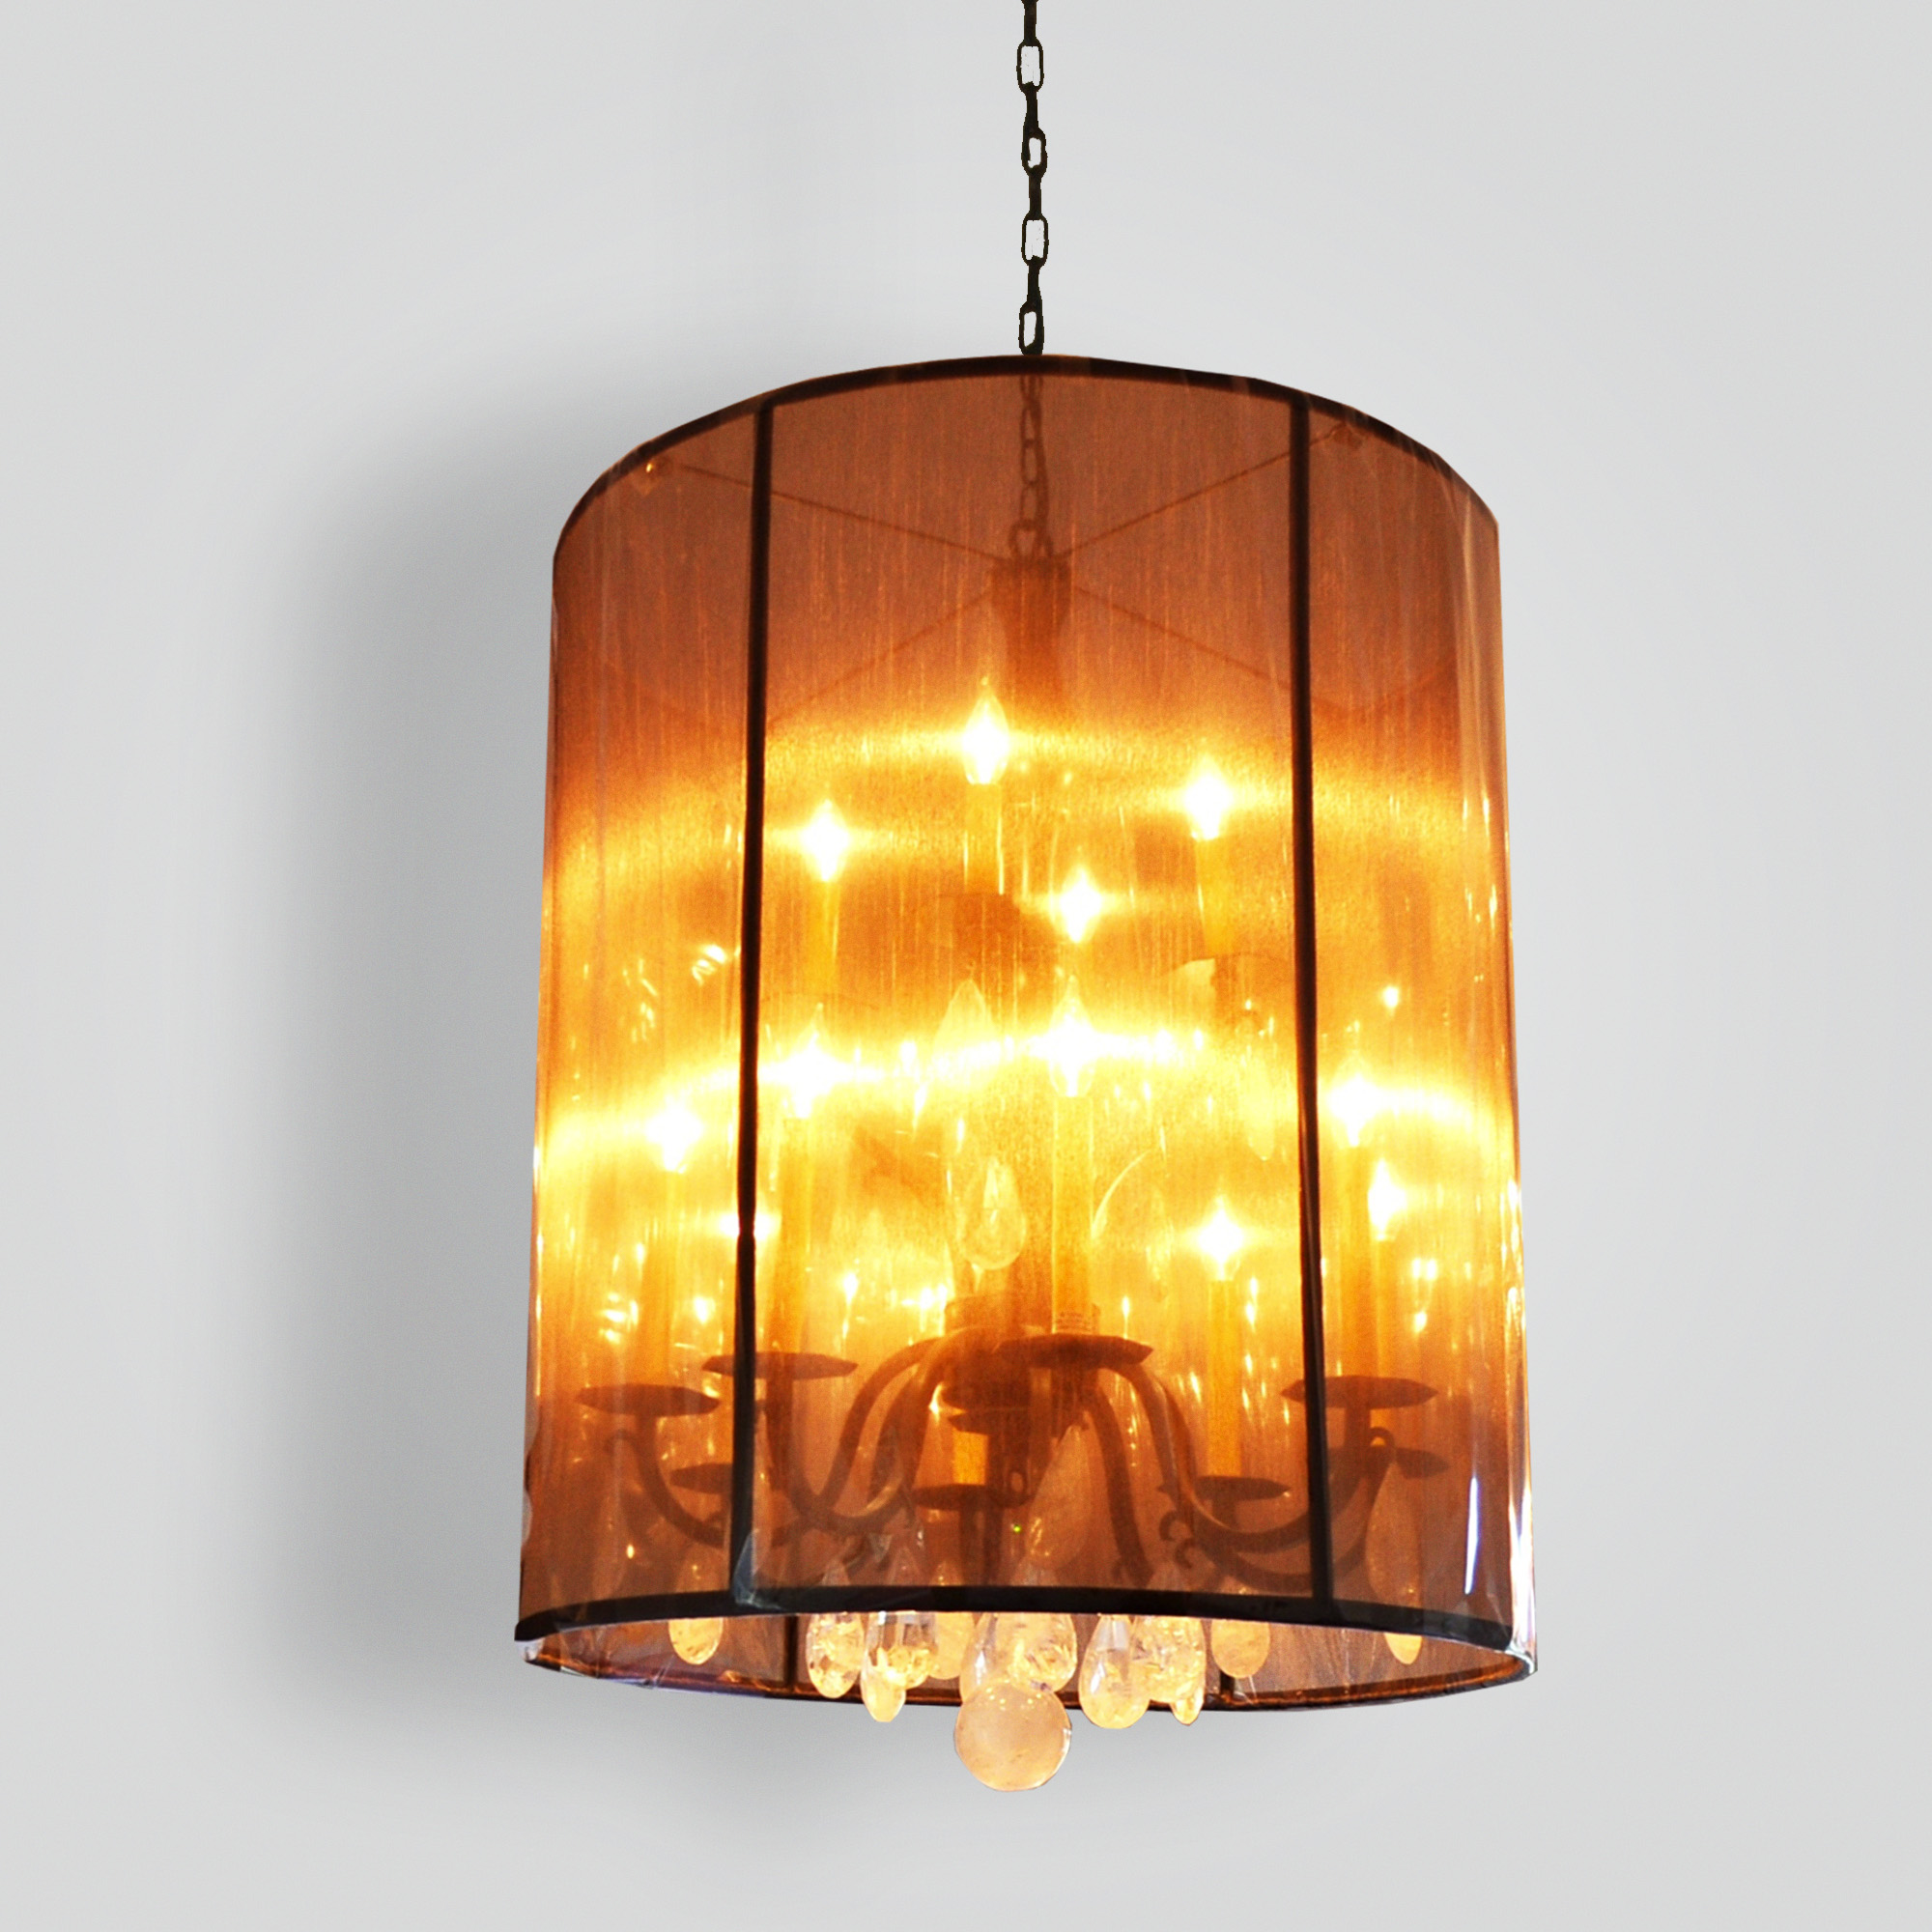 7175-cb12-ir-h-ba-rock-crystal-chandelier-forged-with-satin-mesh-shade-contermporary-chandelier – ADG Lighting Collection